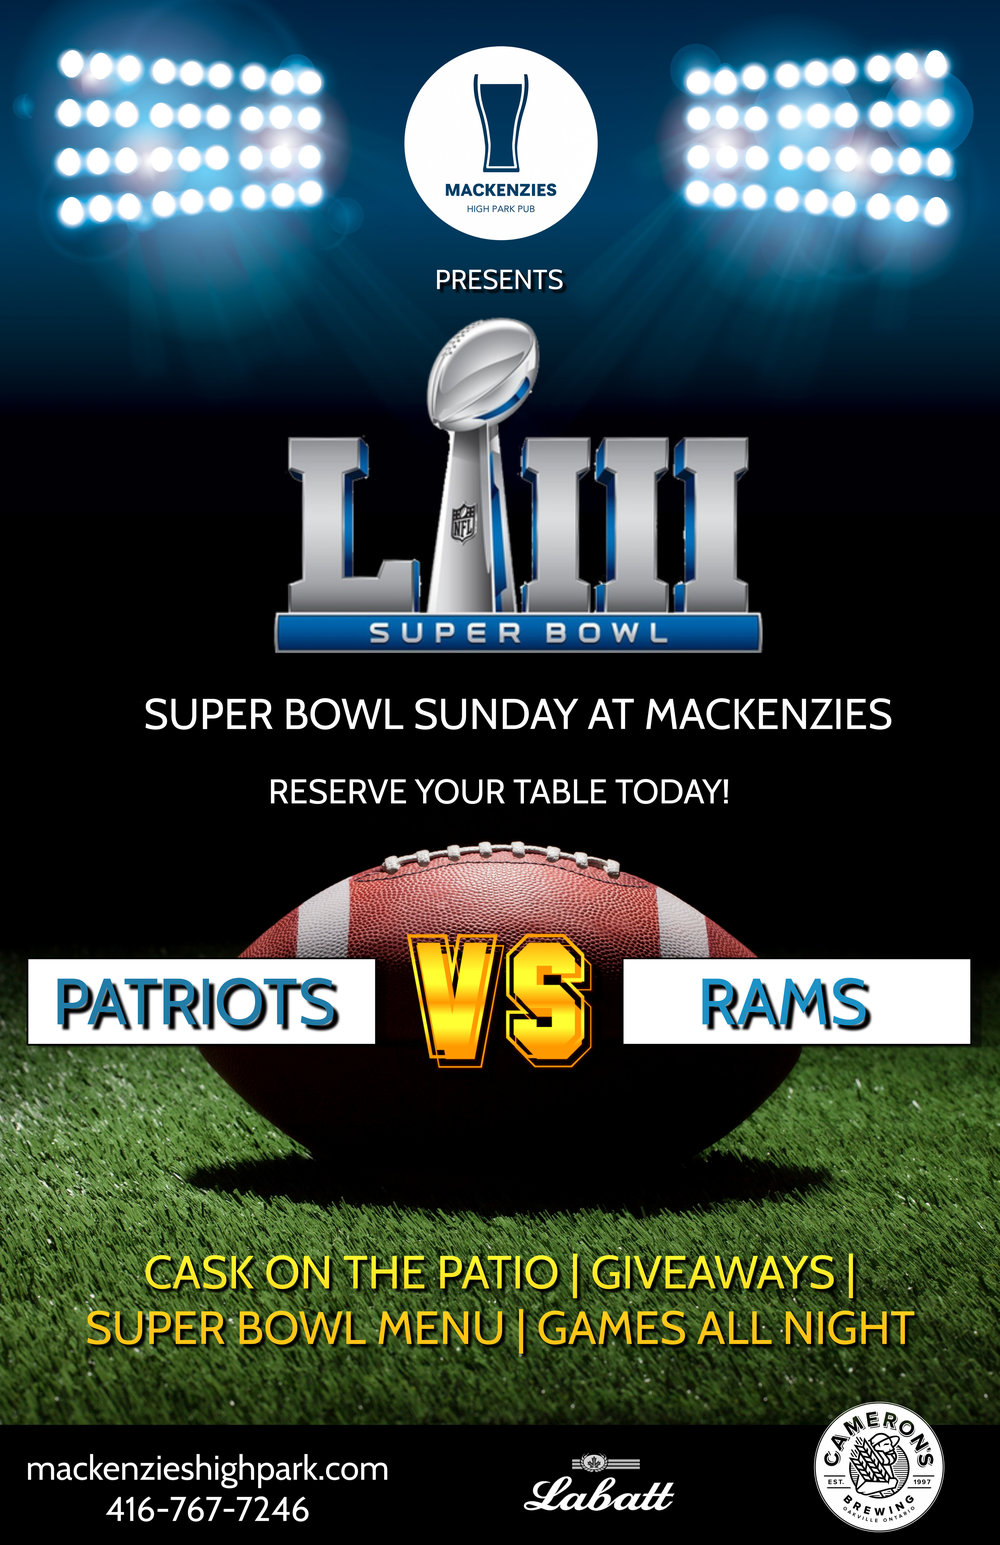 SUPERBOWL FLYER.jpg